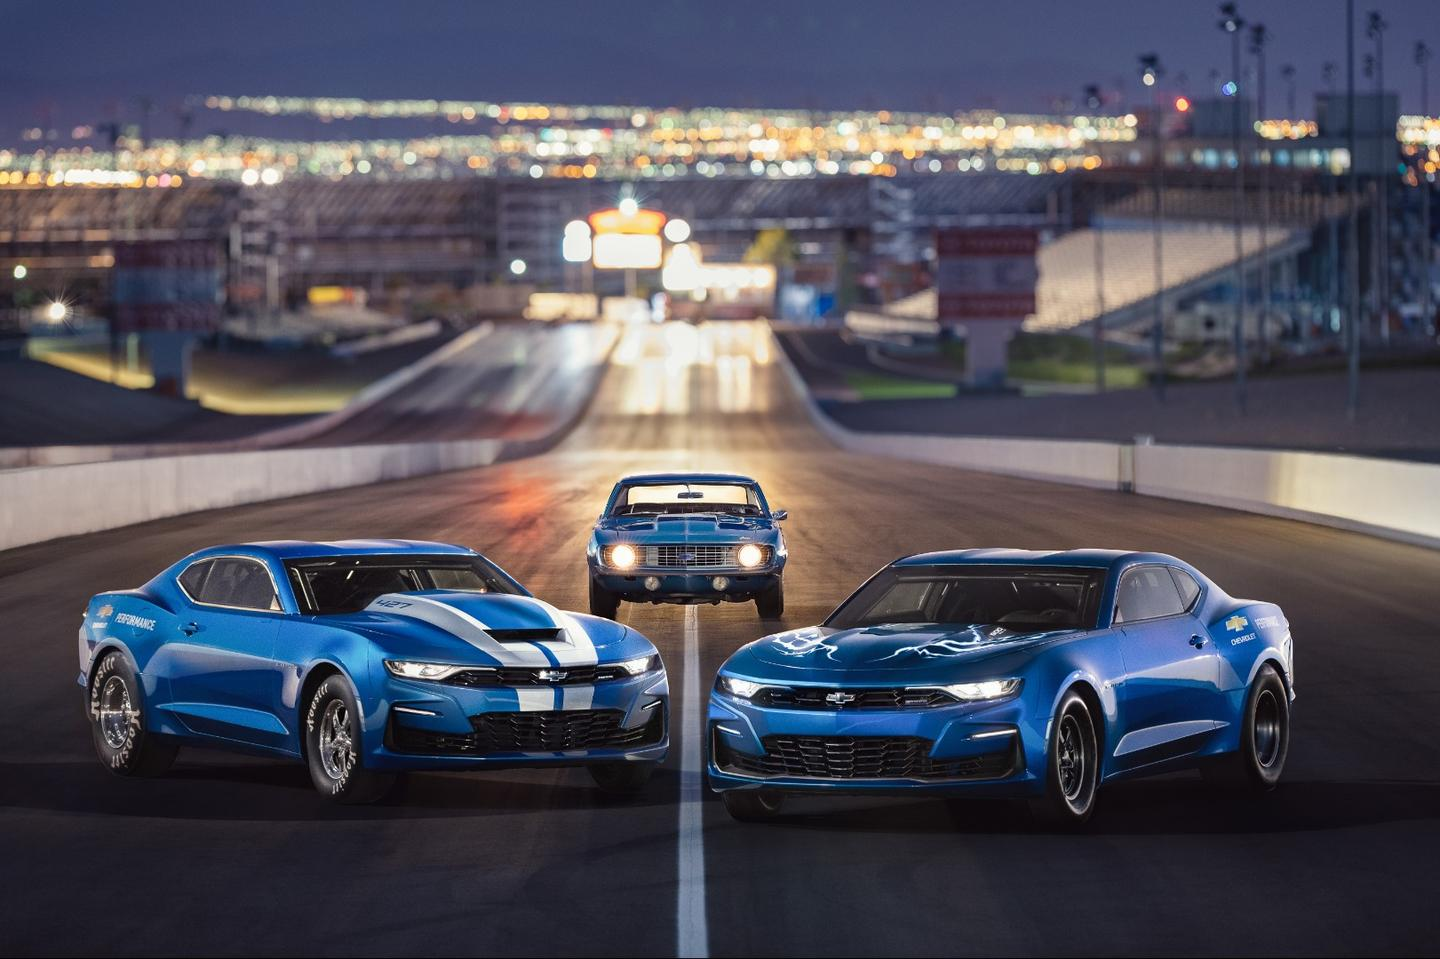 The eCOPO (right) poses with the 2019 COPO Camaro (left) and an original 1969 COPO Camaro (center)